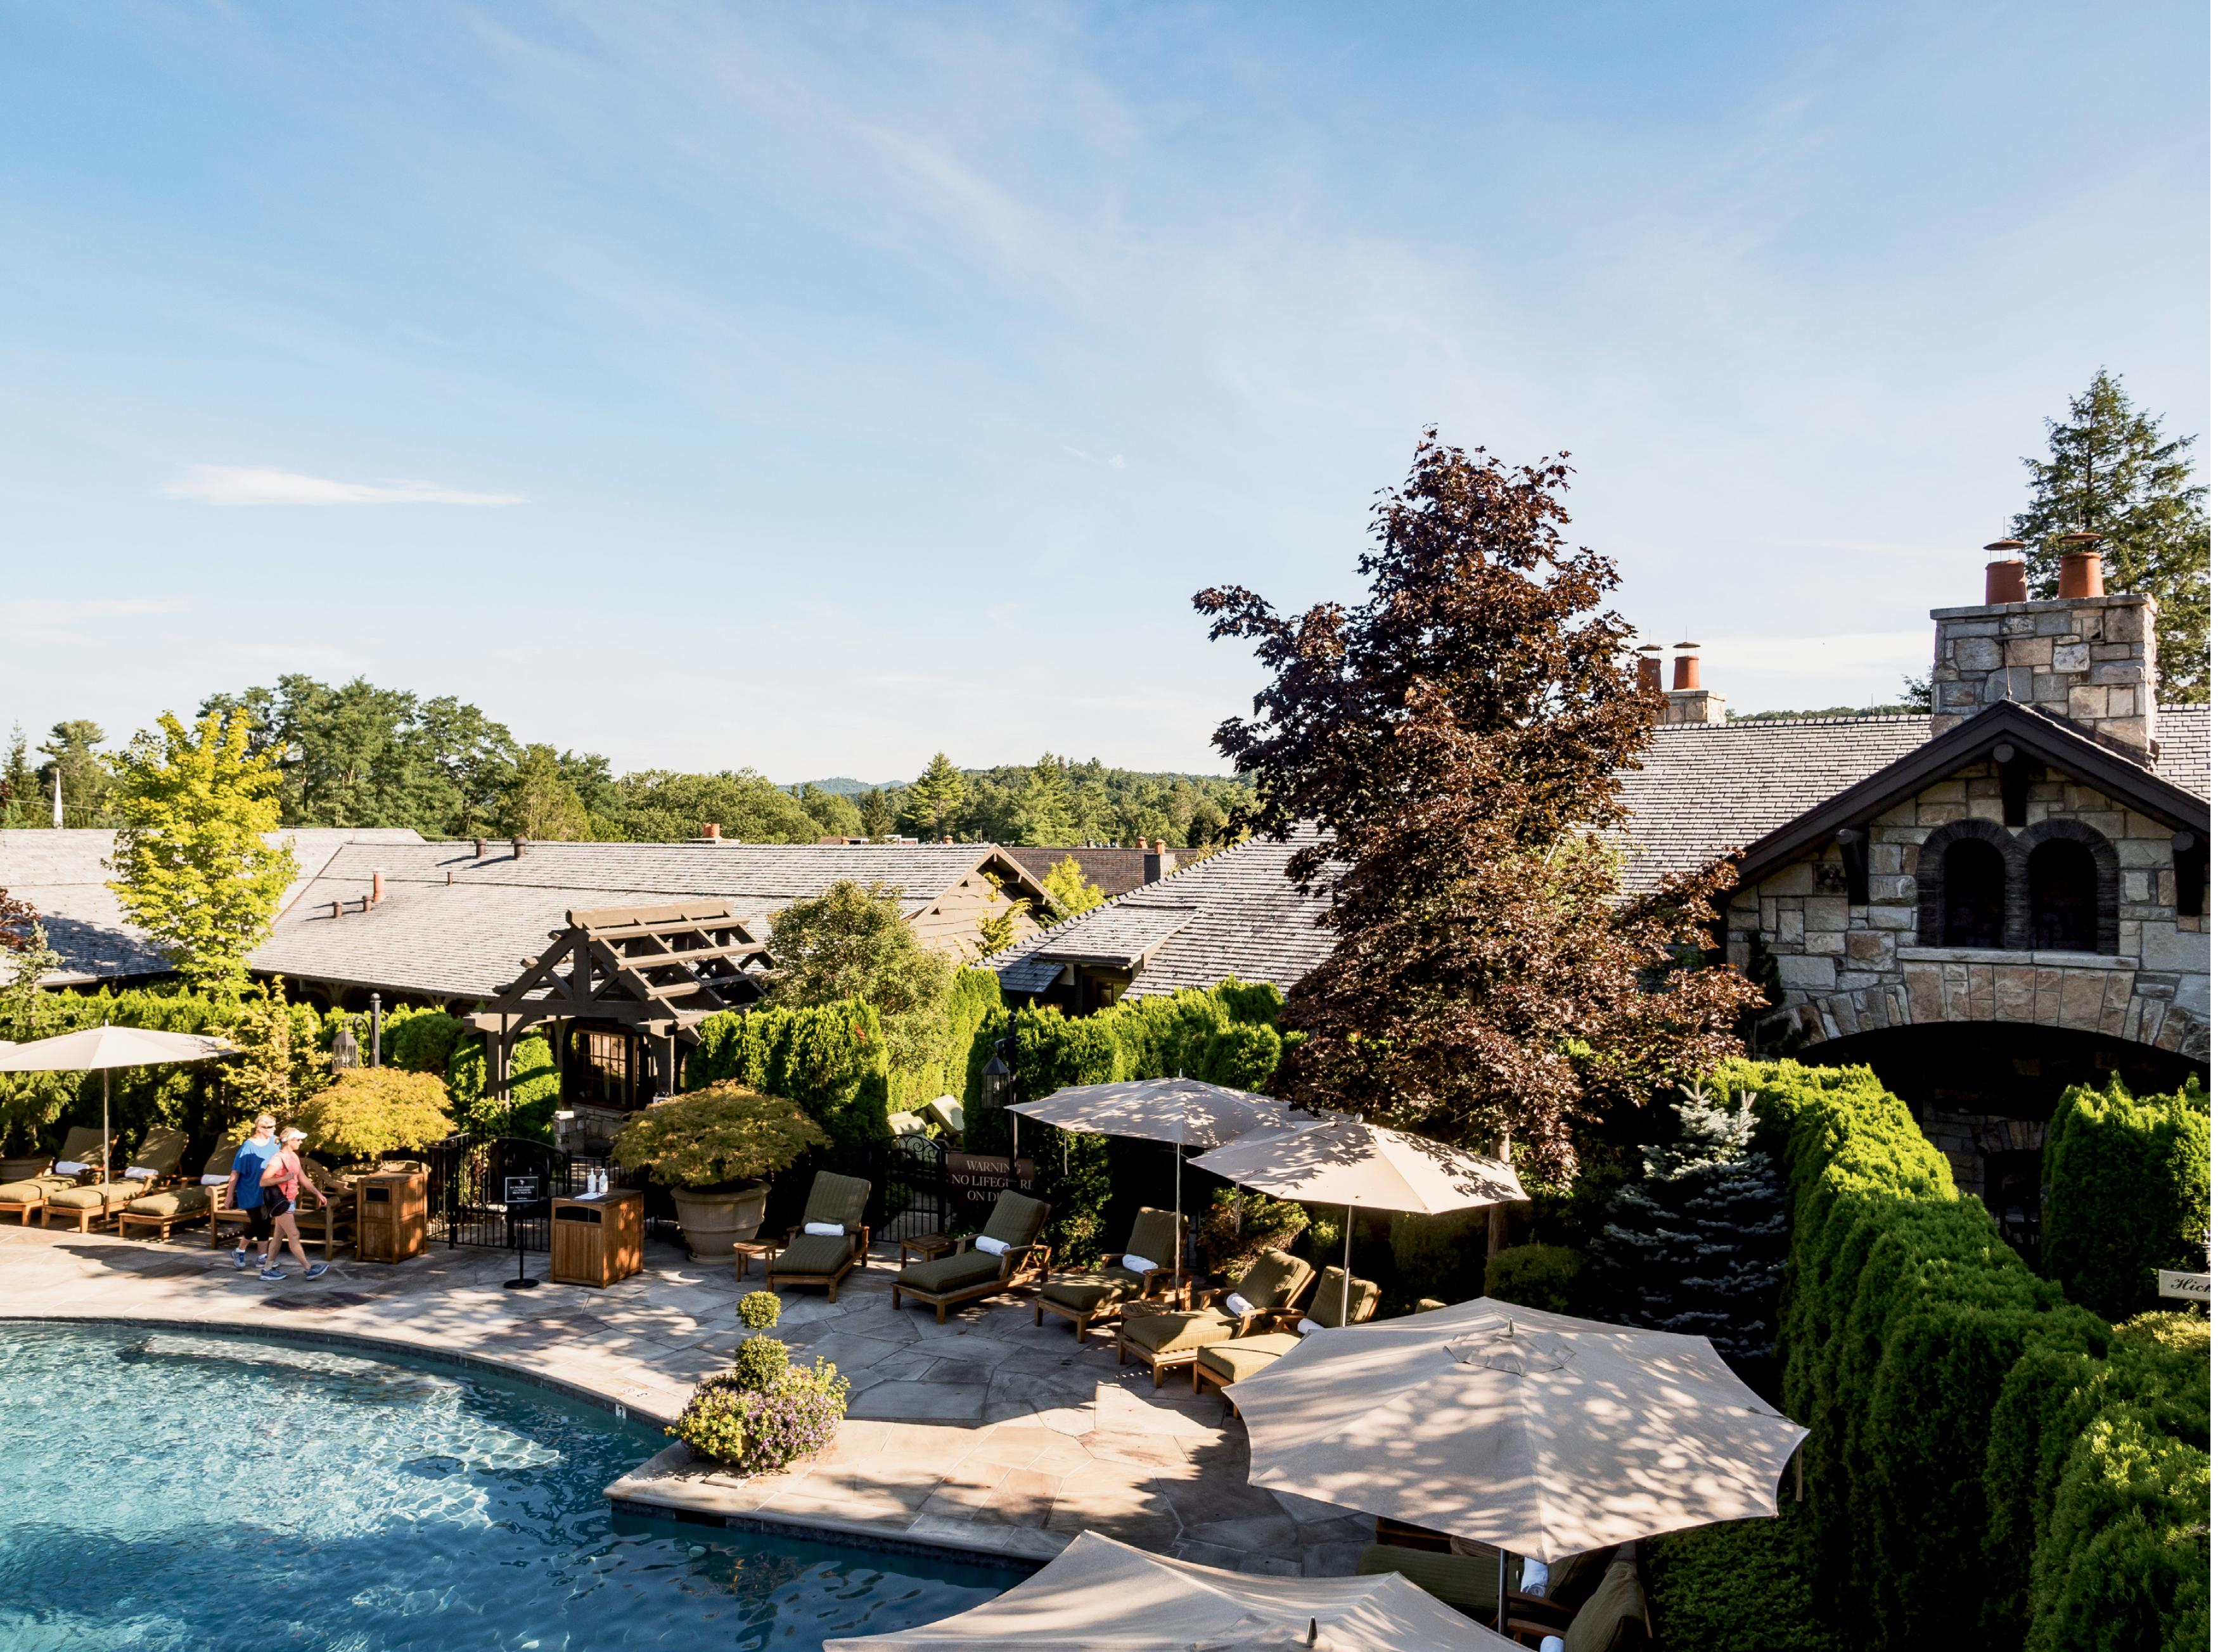 The Hickory Pool, one of two heated mineral swimming pools at the inn